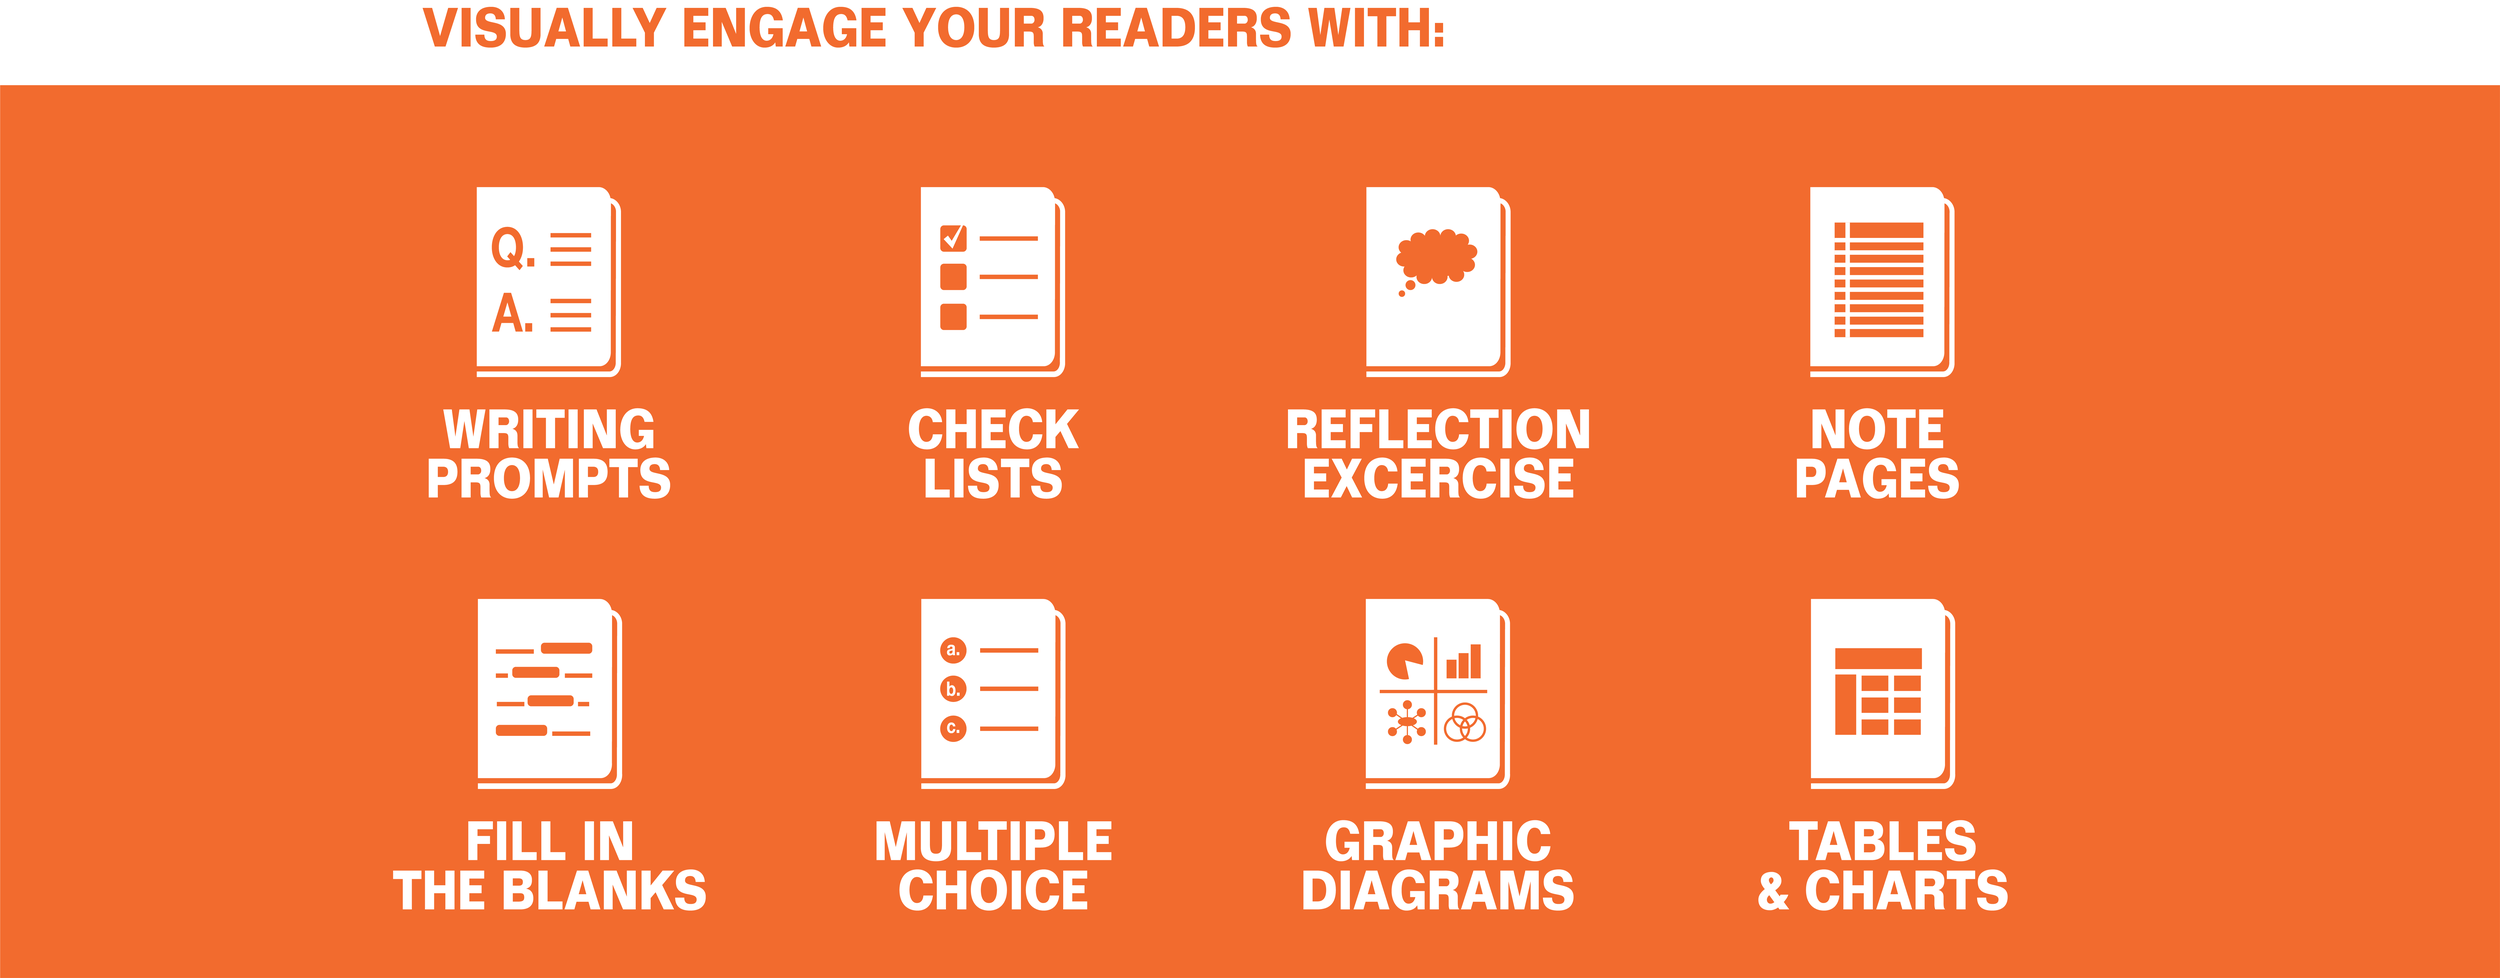 do the workbook visually engage your readers with